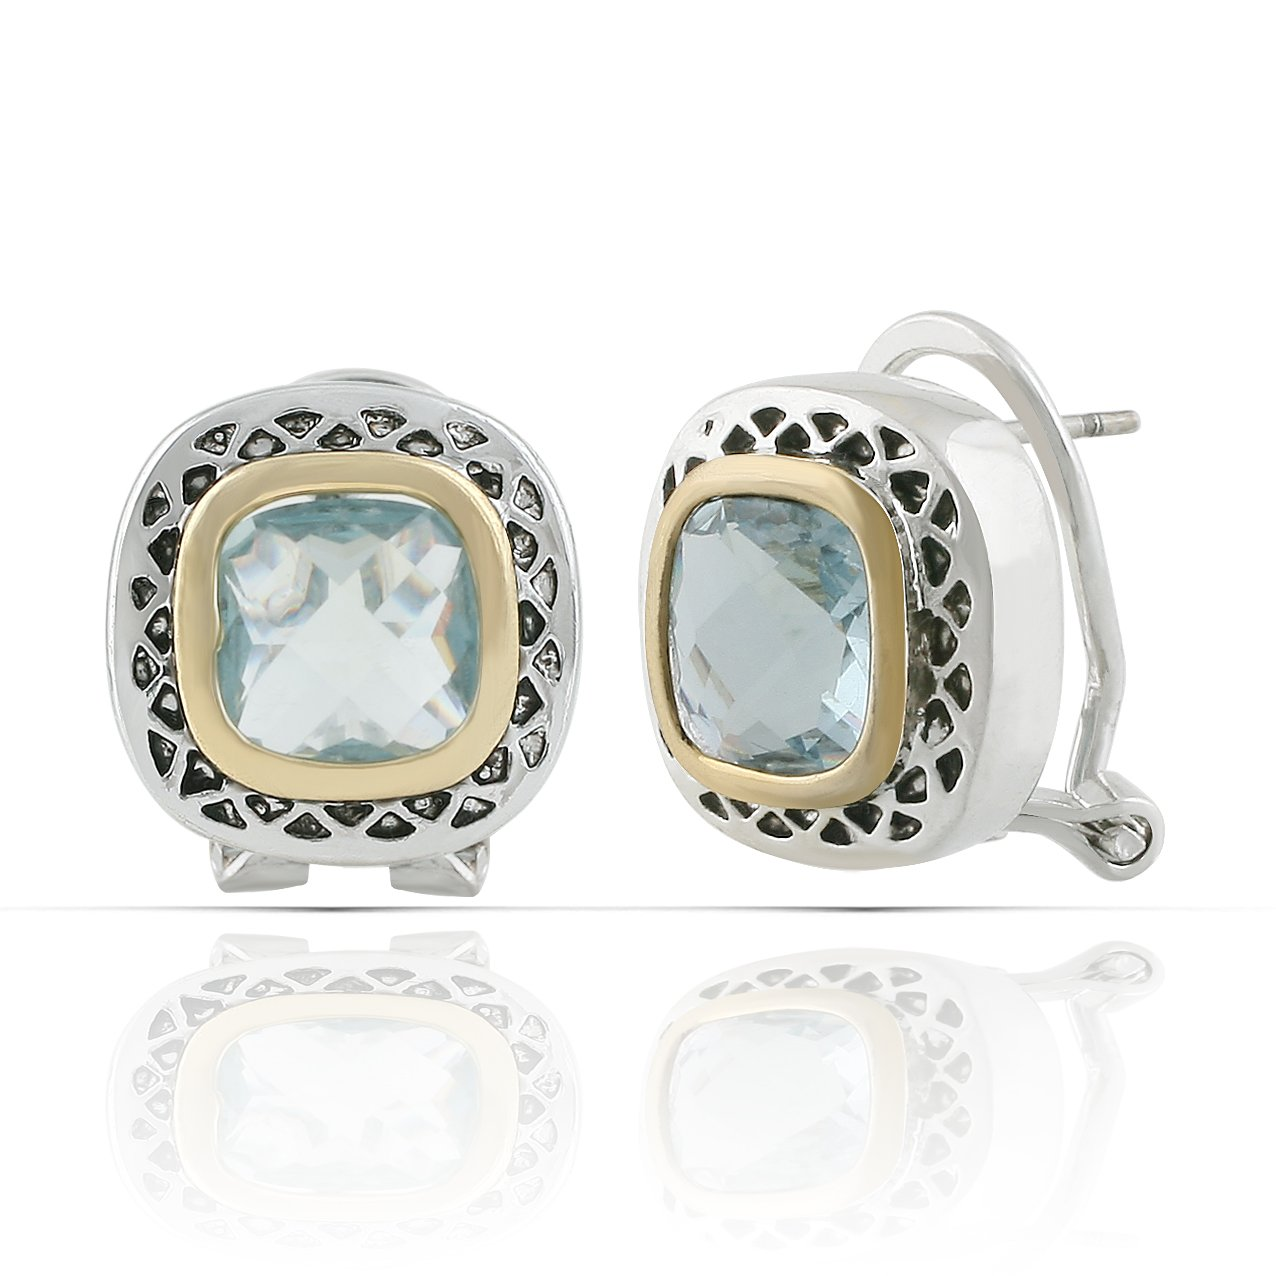 JanKuo Jewelry Two Tone Antique Vintage Style Aquamarine Color French Clip Earrings